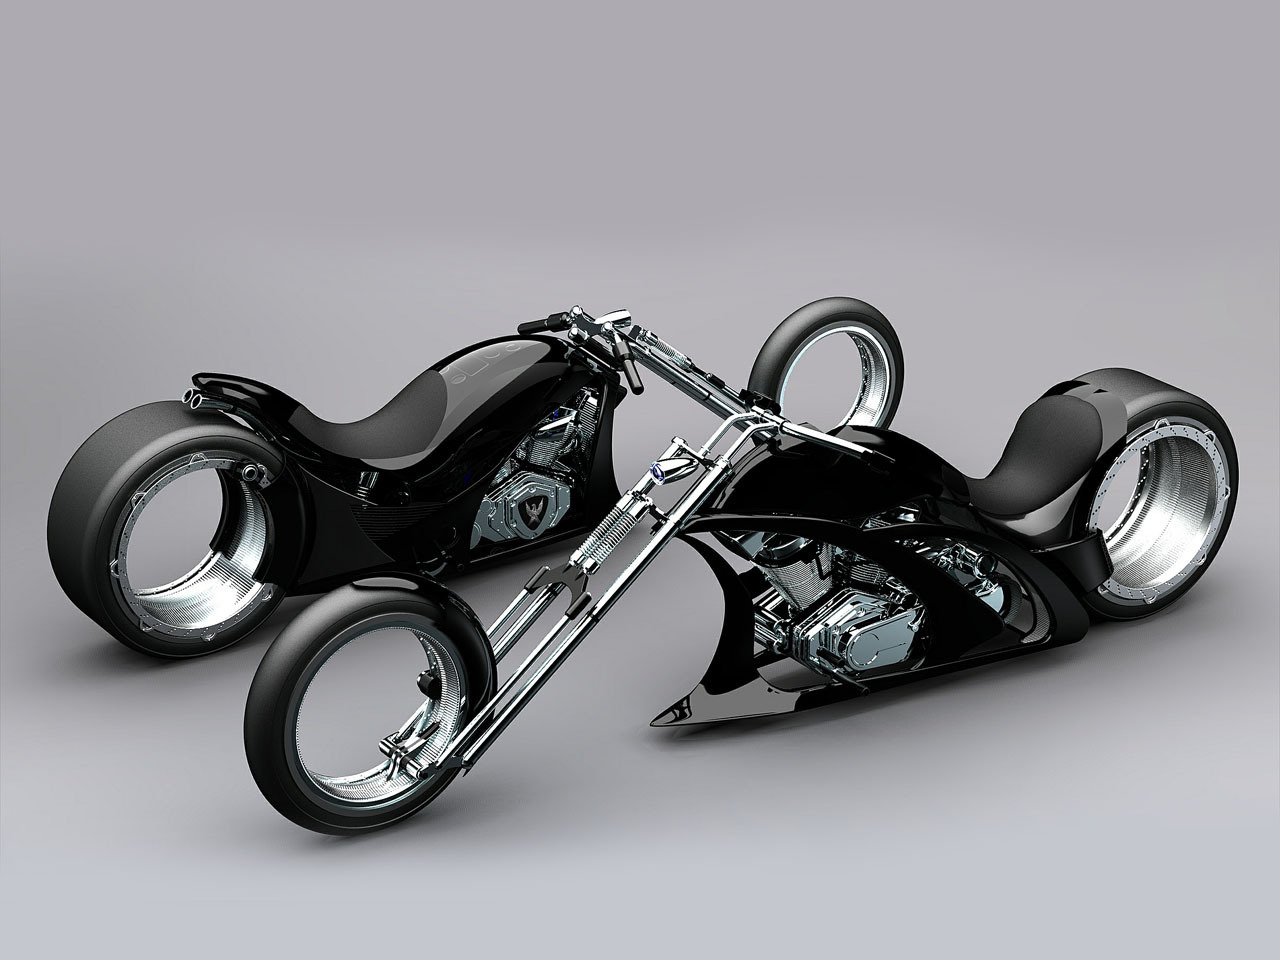 Harley-davidson chopper photo - 3